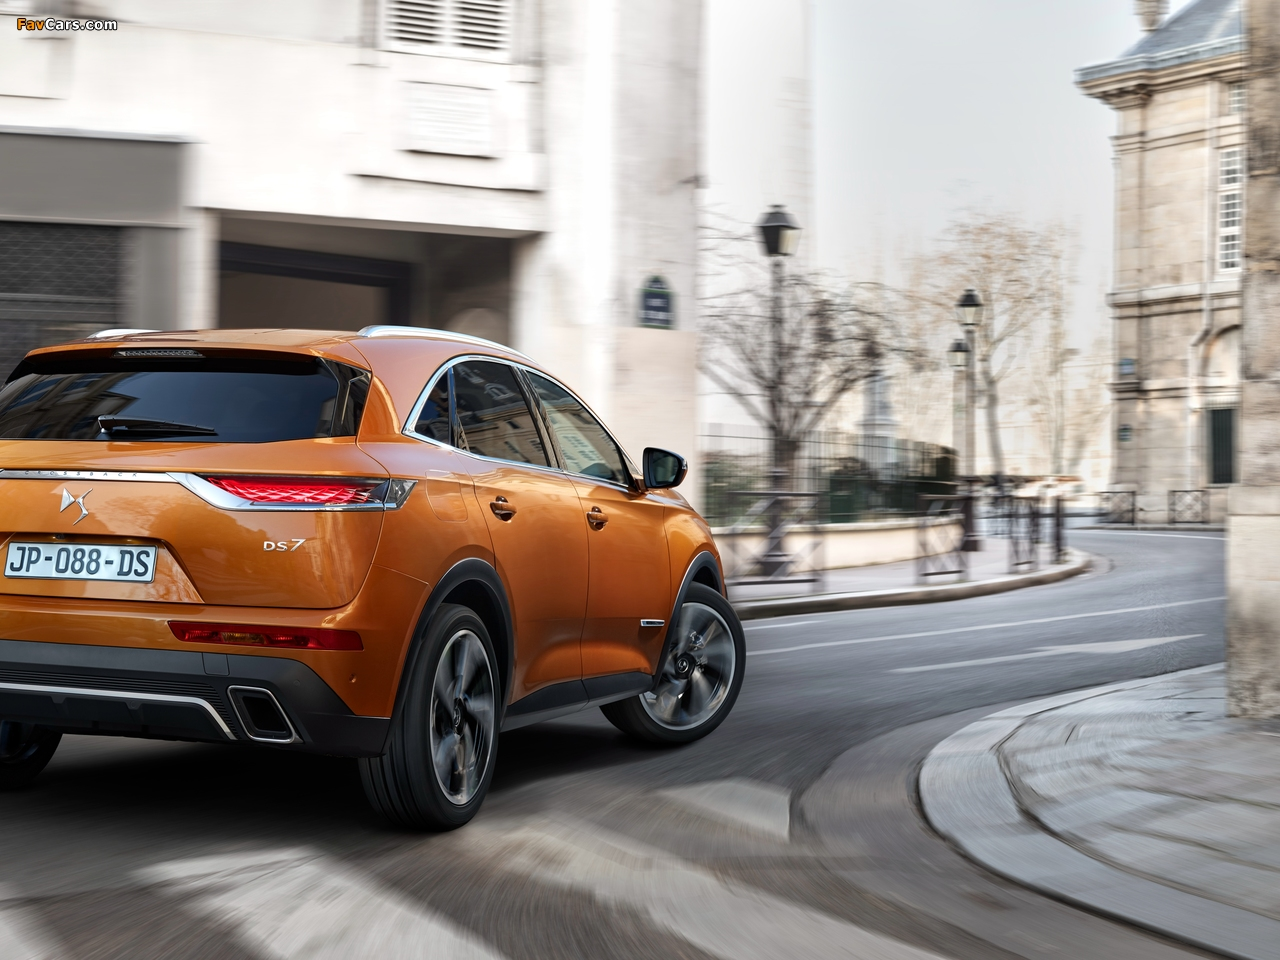 DS 7 Crossback (X74) 2017 pictures (1280 x 960)